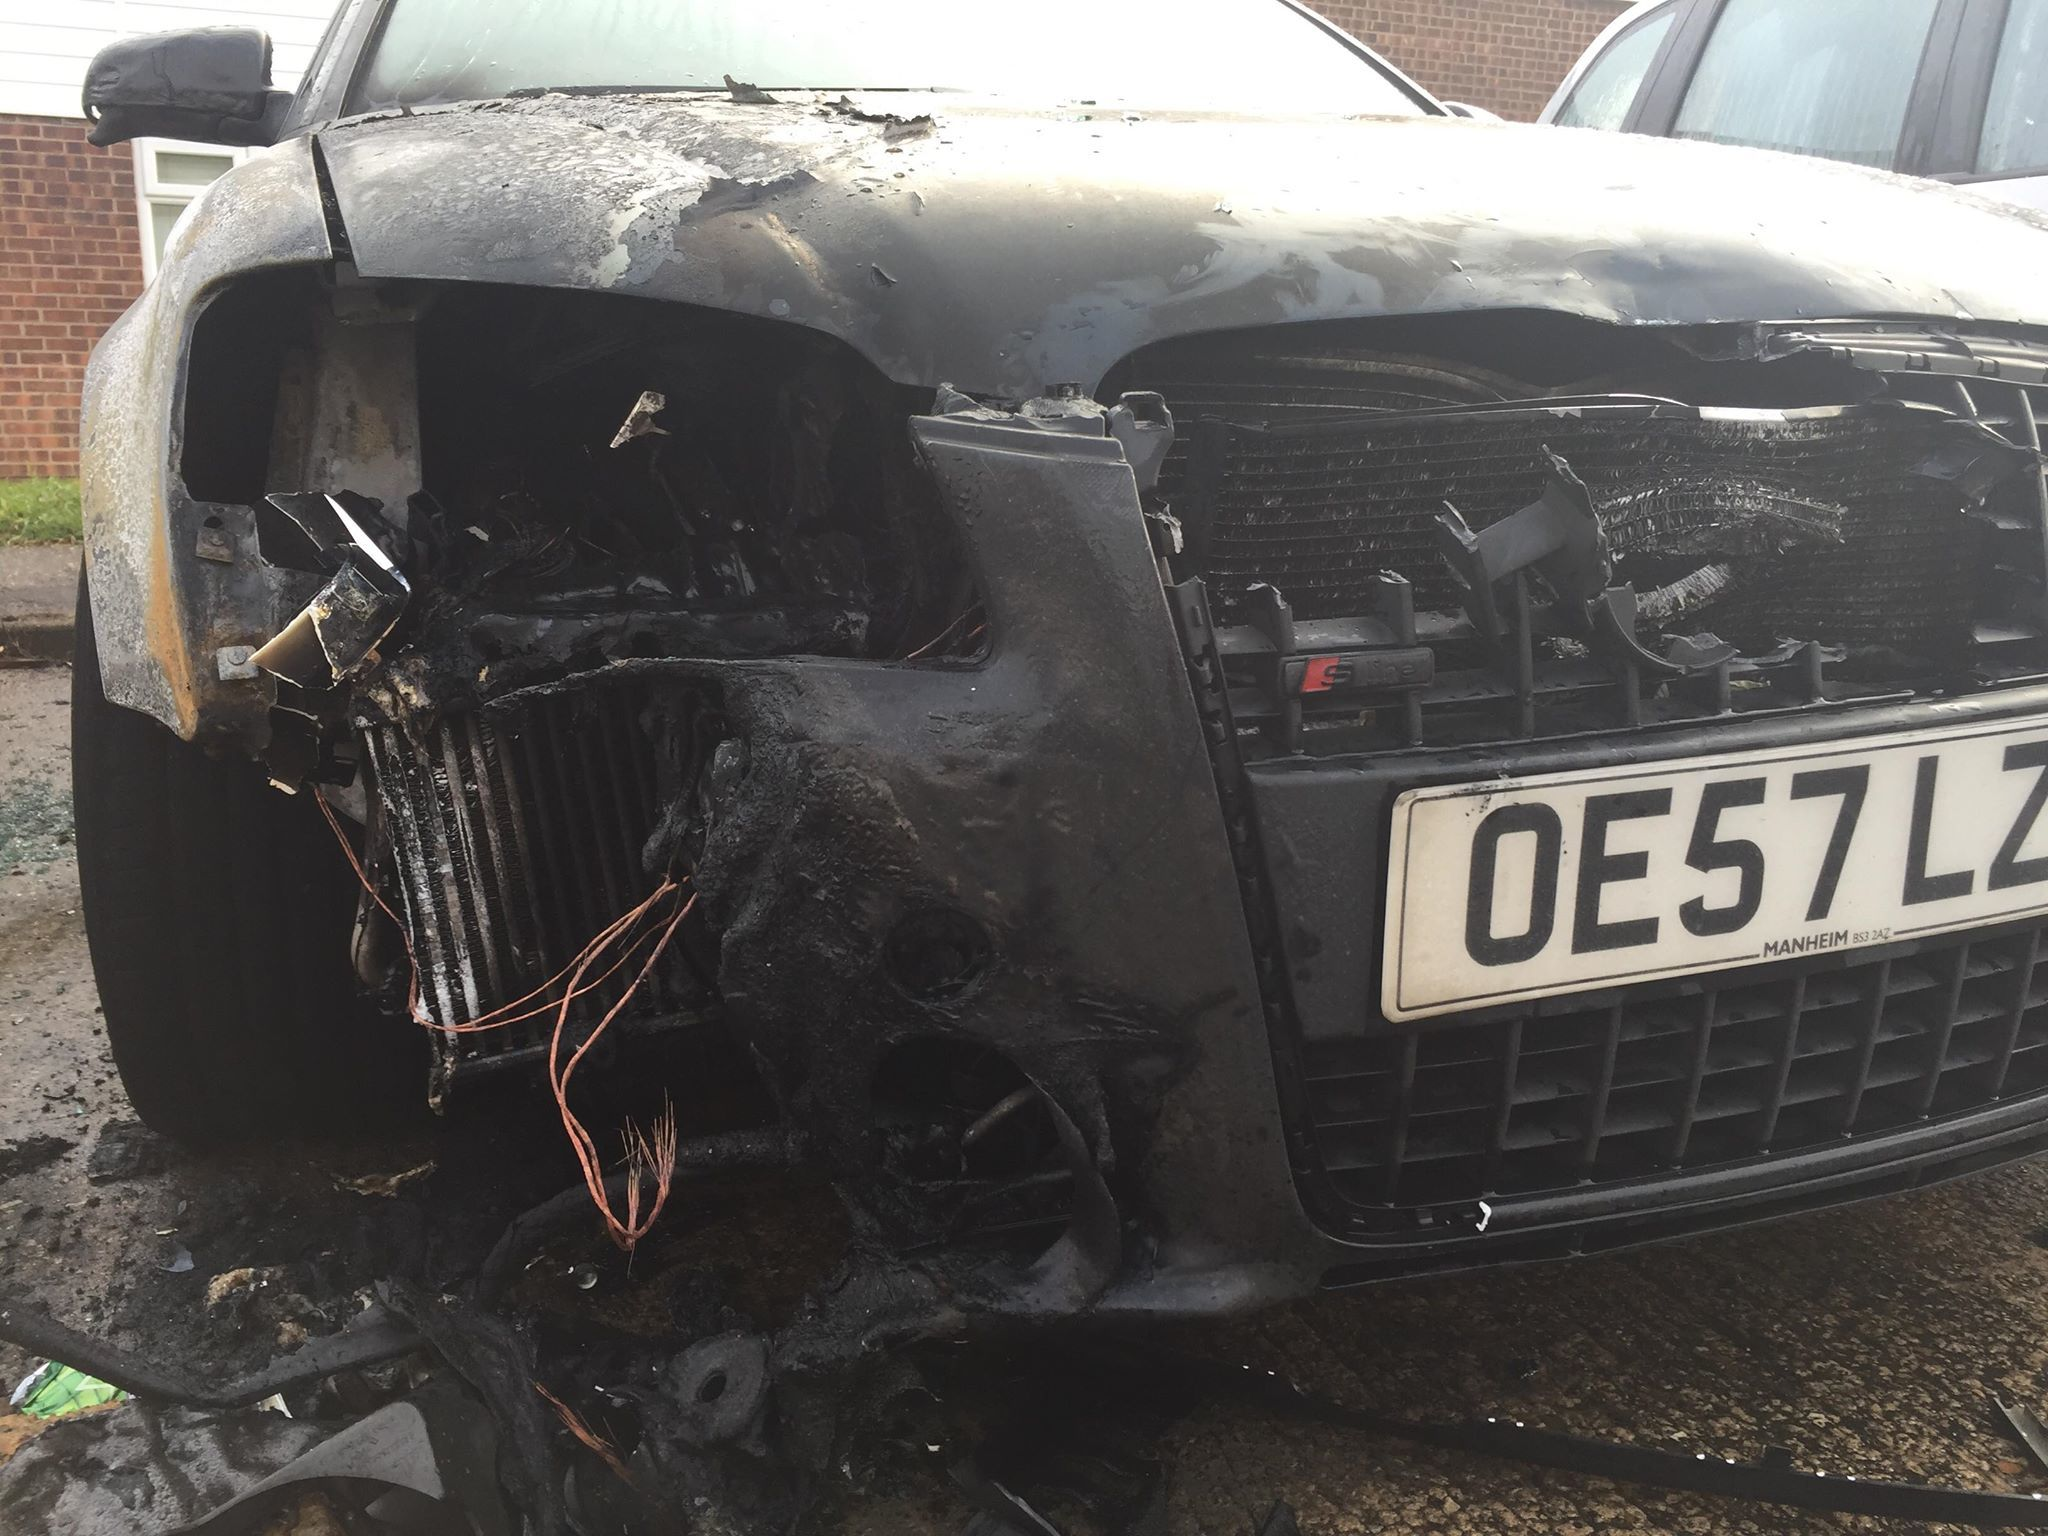 Audi torched in Clacton